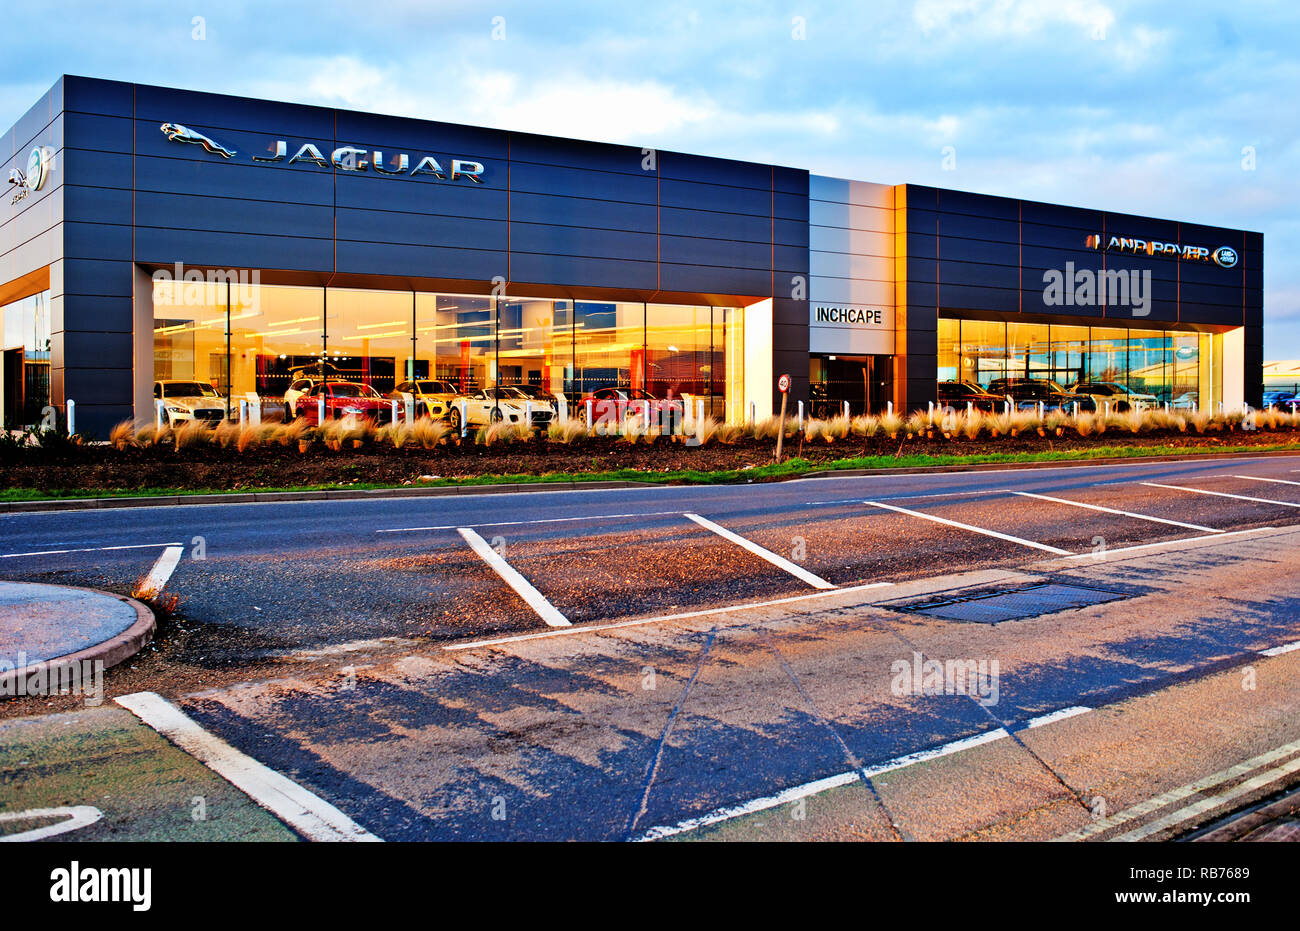 Inchcape Stock Photos Amp Inchcape Stock Images Alamy